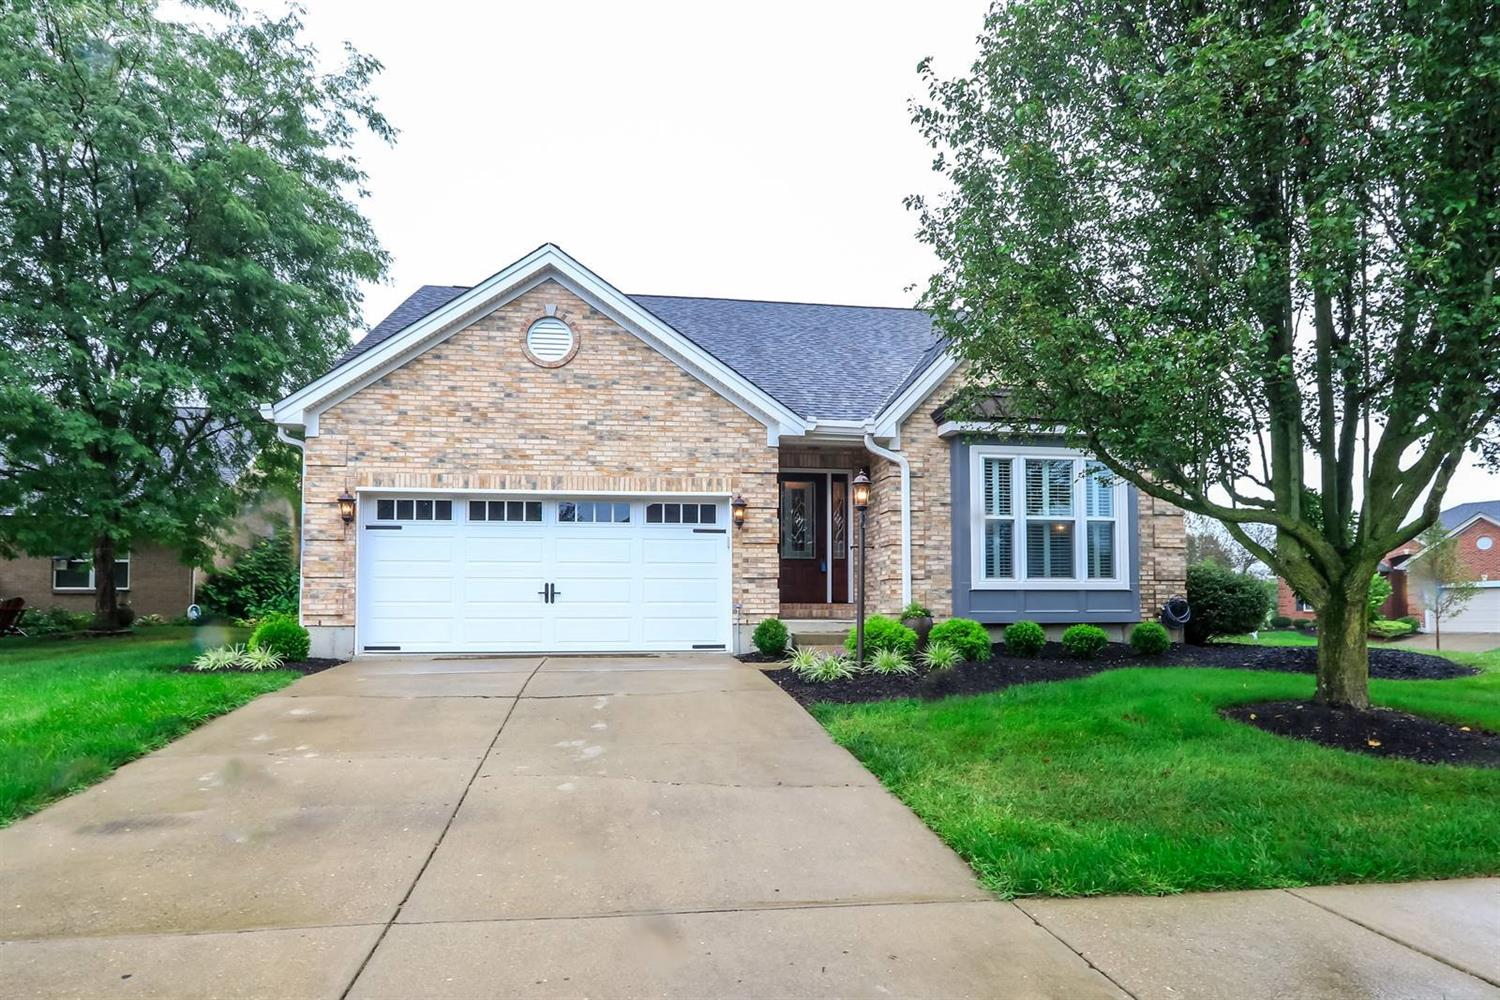 Property for sale at 6164 Stone Mill Court, Fairfield Twp,  Ohio 45011